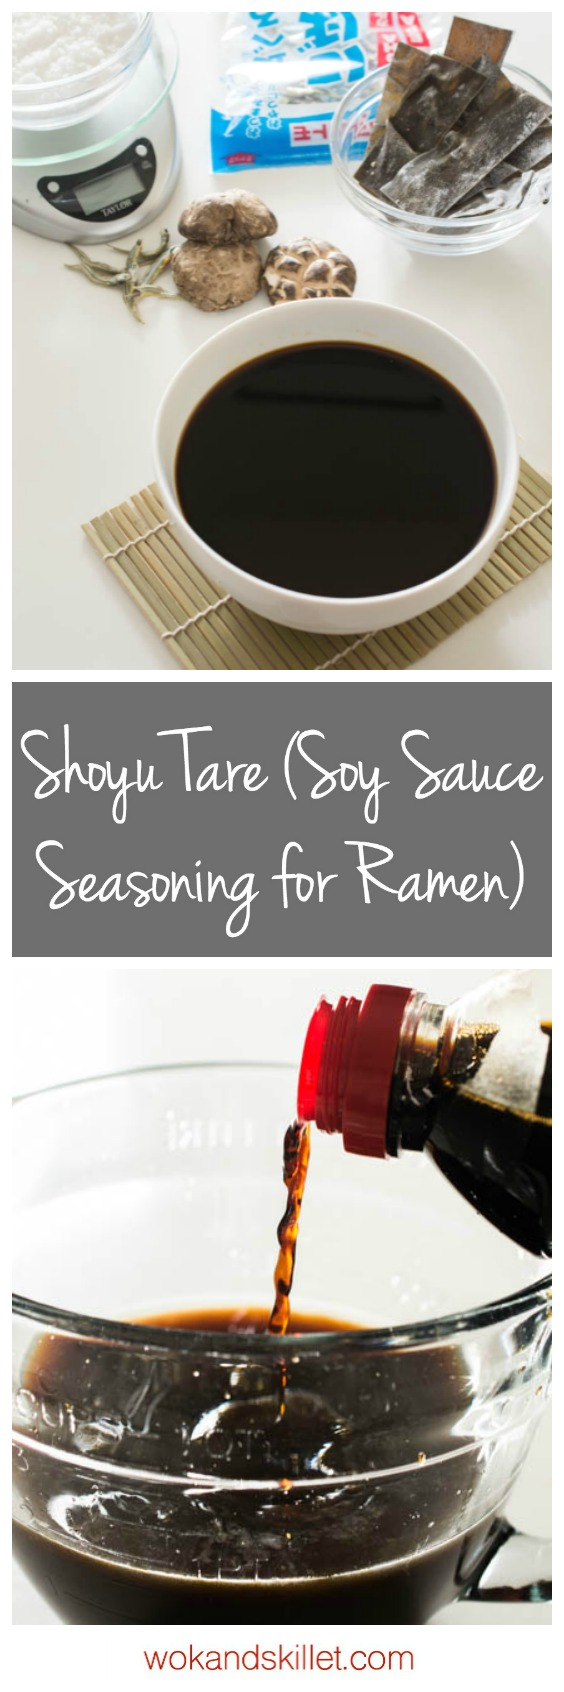 Shoyu Tare is the soy sauce seasoning and concentrated flavor base used in Japanese Shoyu Ramen; one of the most important elements in a good bowl of ramen.